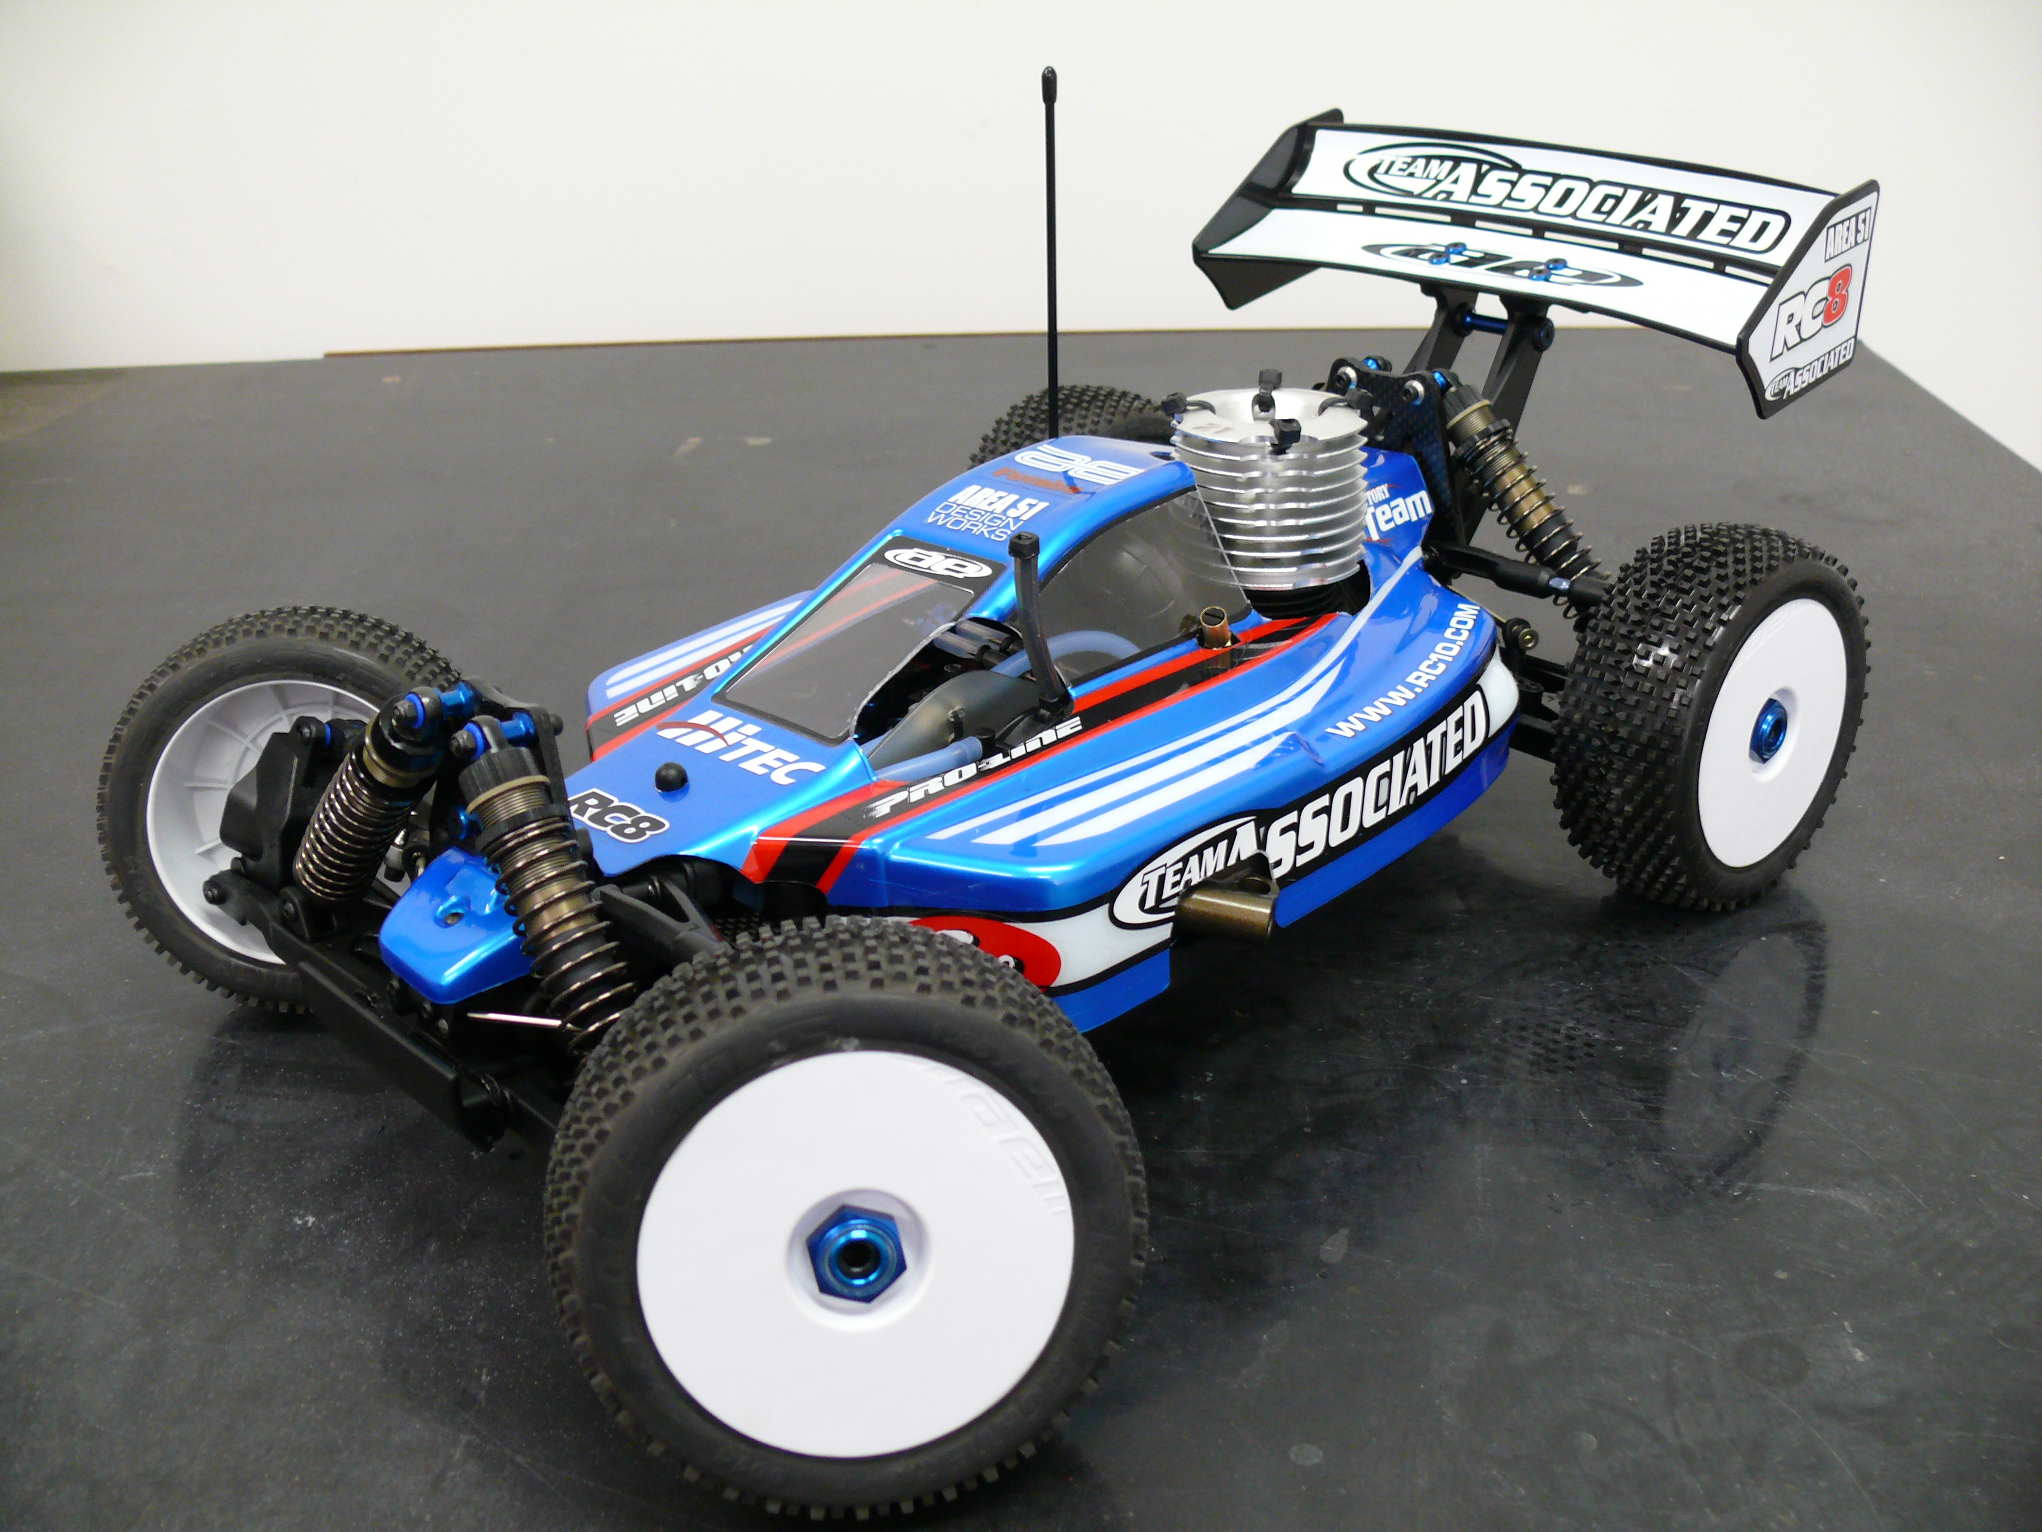 rc gas cars for sale with 196350 Pics Your Rc Nitro Off Road Cars 17 on Ma1015 Madbeast Blacksilver Reverse Artr additionally Rc Cars For Sale Best Nitro Gas Powered Petrol Electric Fast Drift Tamiya Traxxas Radio Controlled Cars furthermore 196350 Pics Your Rc Nitro Off Road Cars 17 besides 19132 Helicopter Modified Boat To Race also 7209.